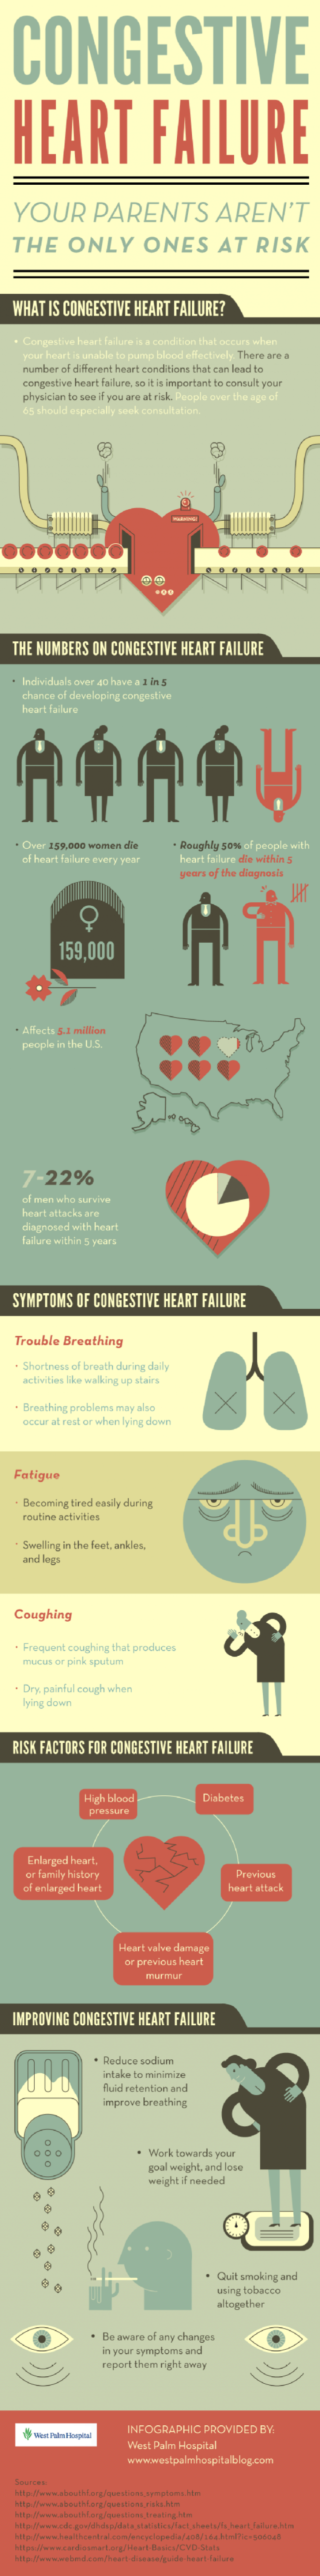 Congestive Heart Failure – Your Parents Aren't the Only Ones at Risk